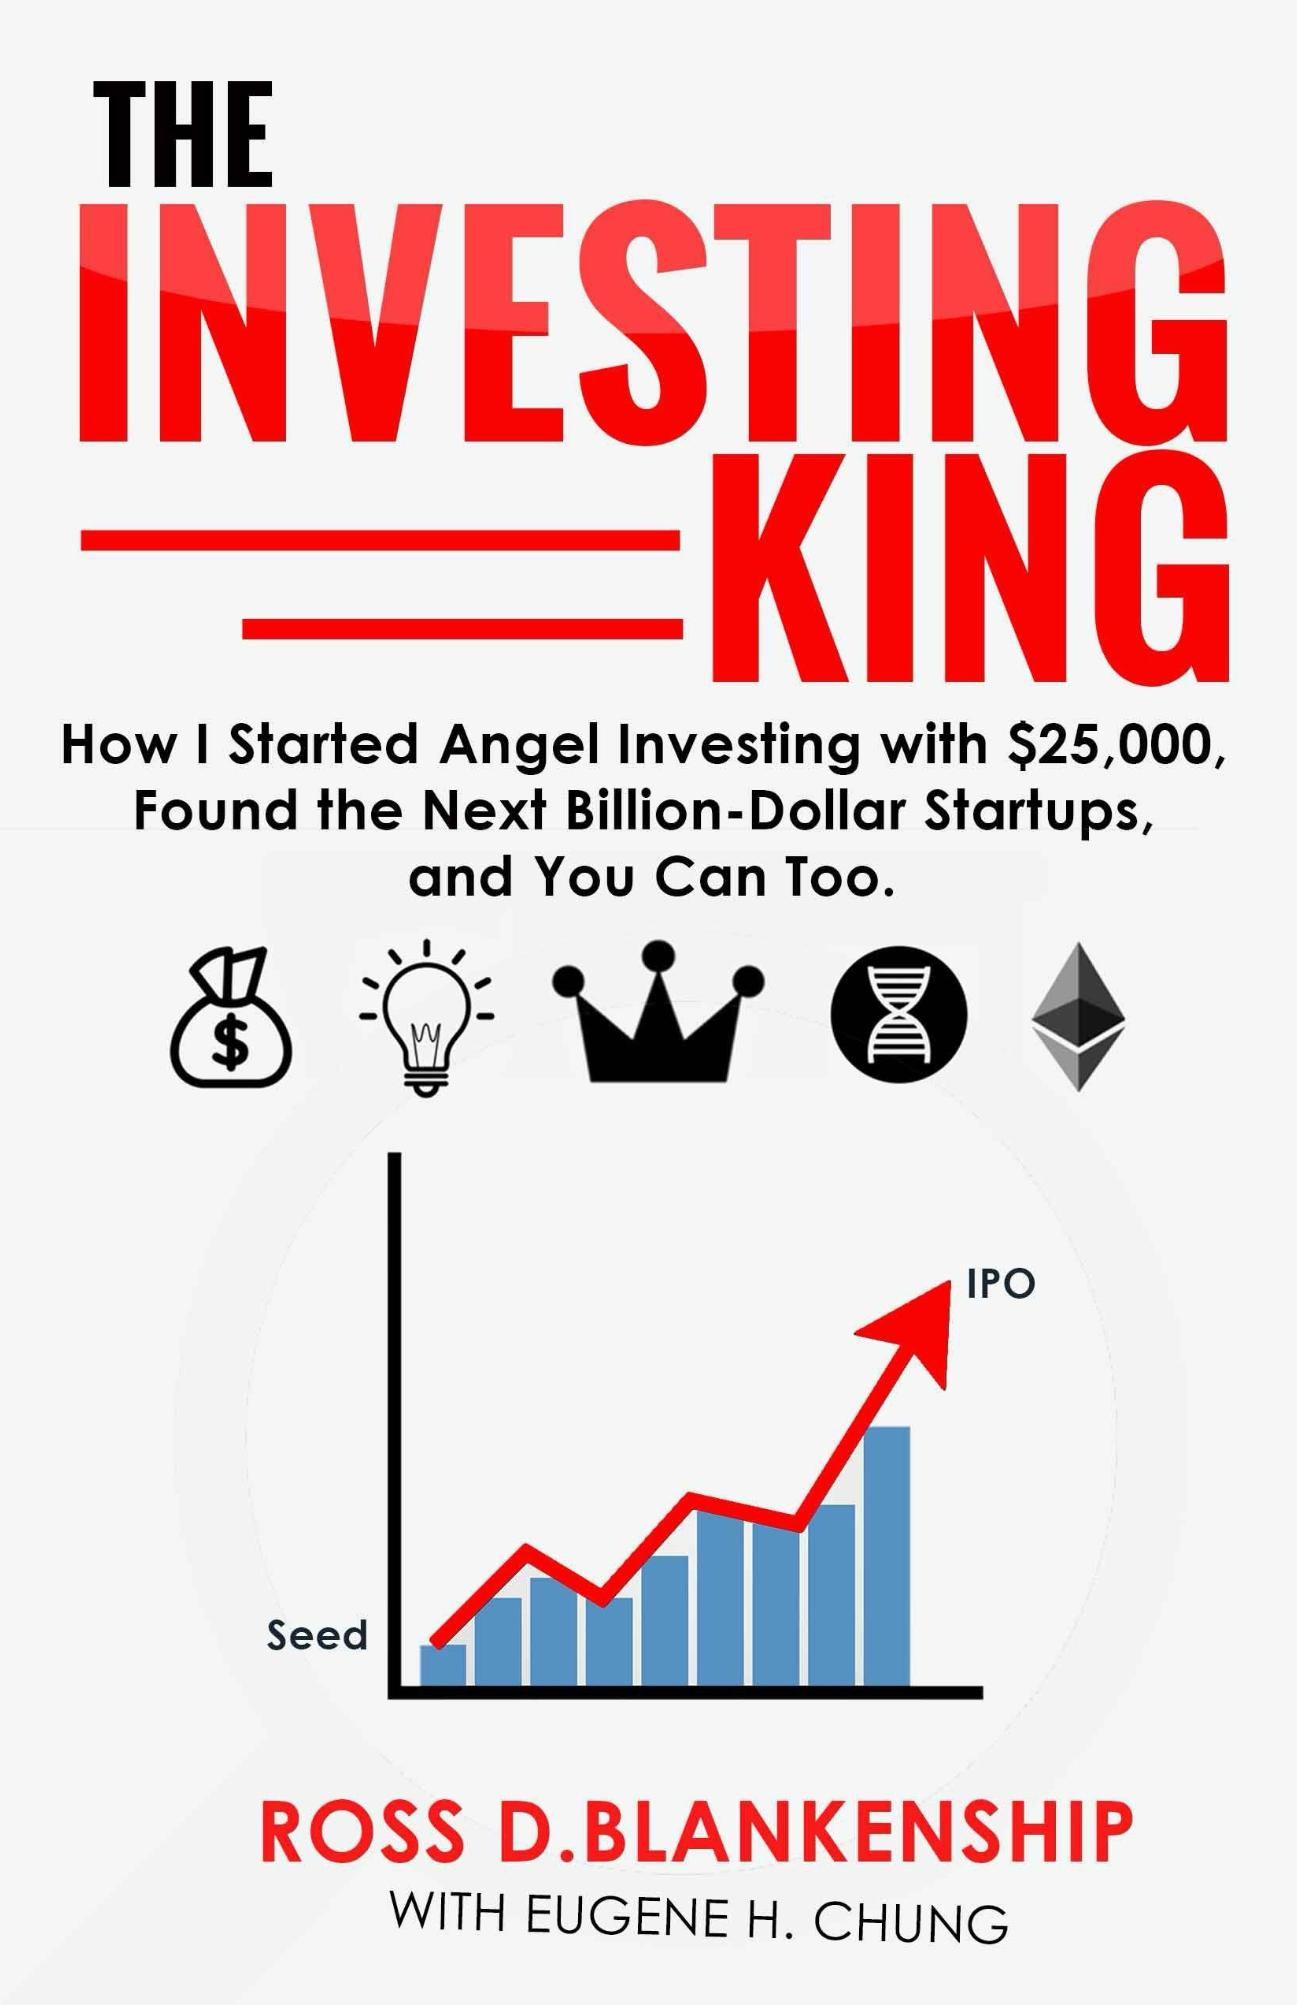 Startup Book on How to Invest in the Next Billion-Dollar Startups.